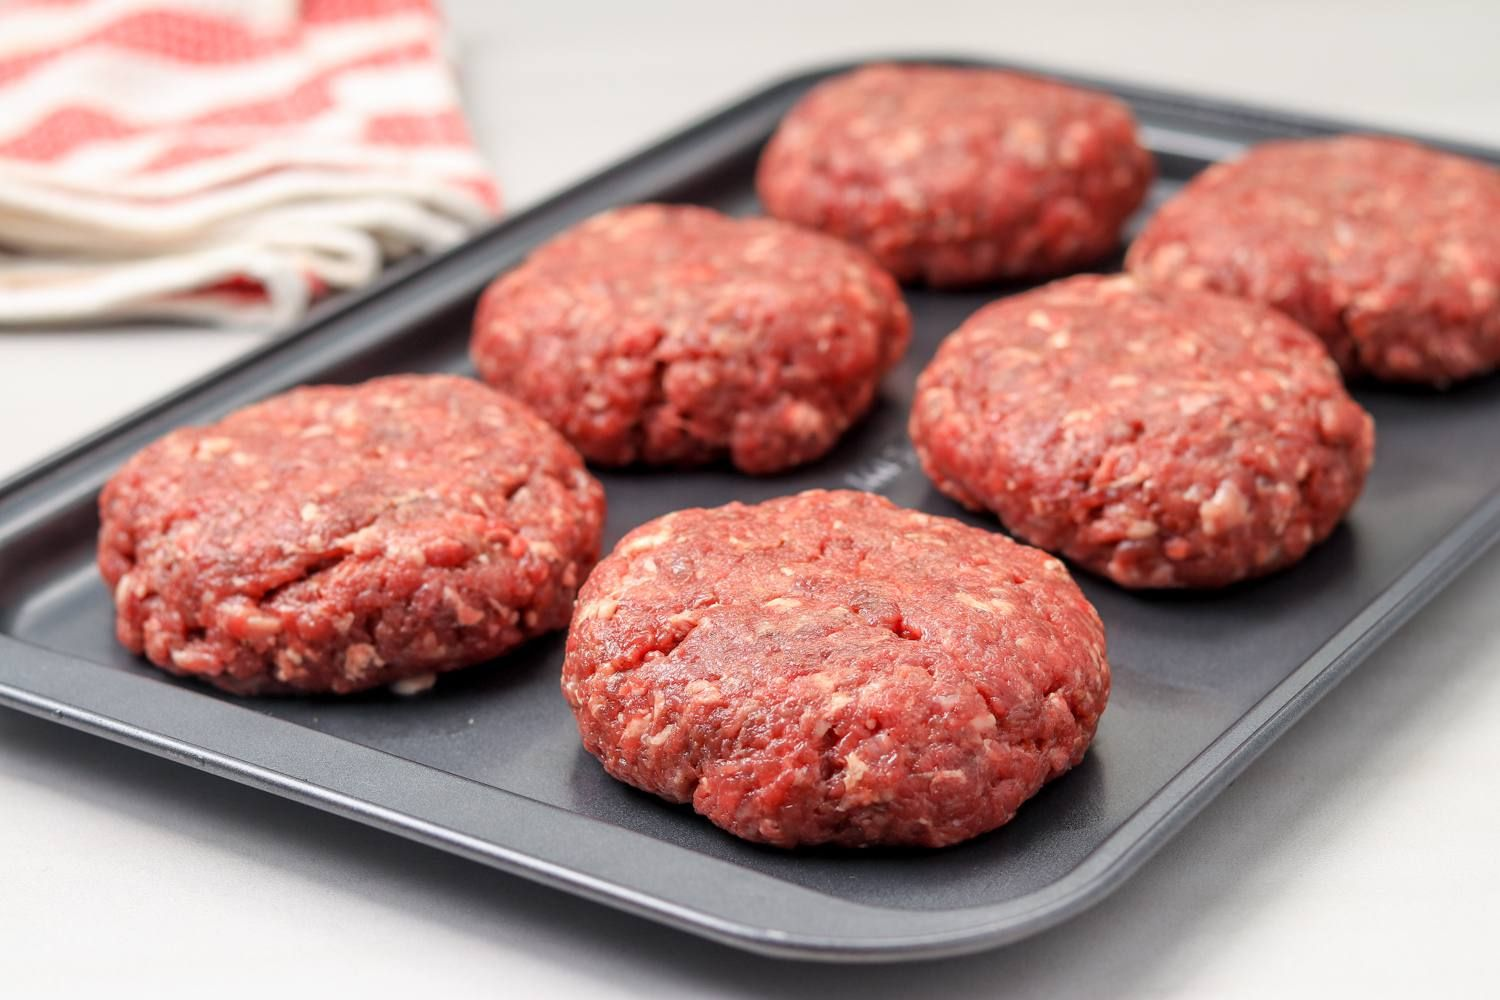 Burgers Can Be Juicy When Made In The Oven Recipe Baked Burgers Oven Baked Burgers Recipes